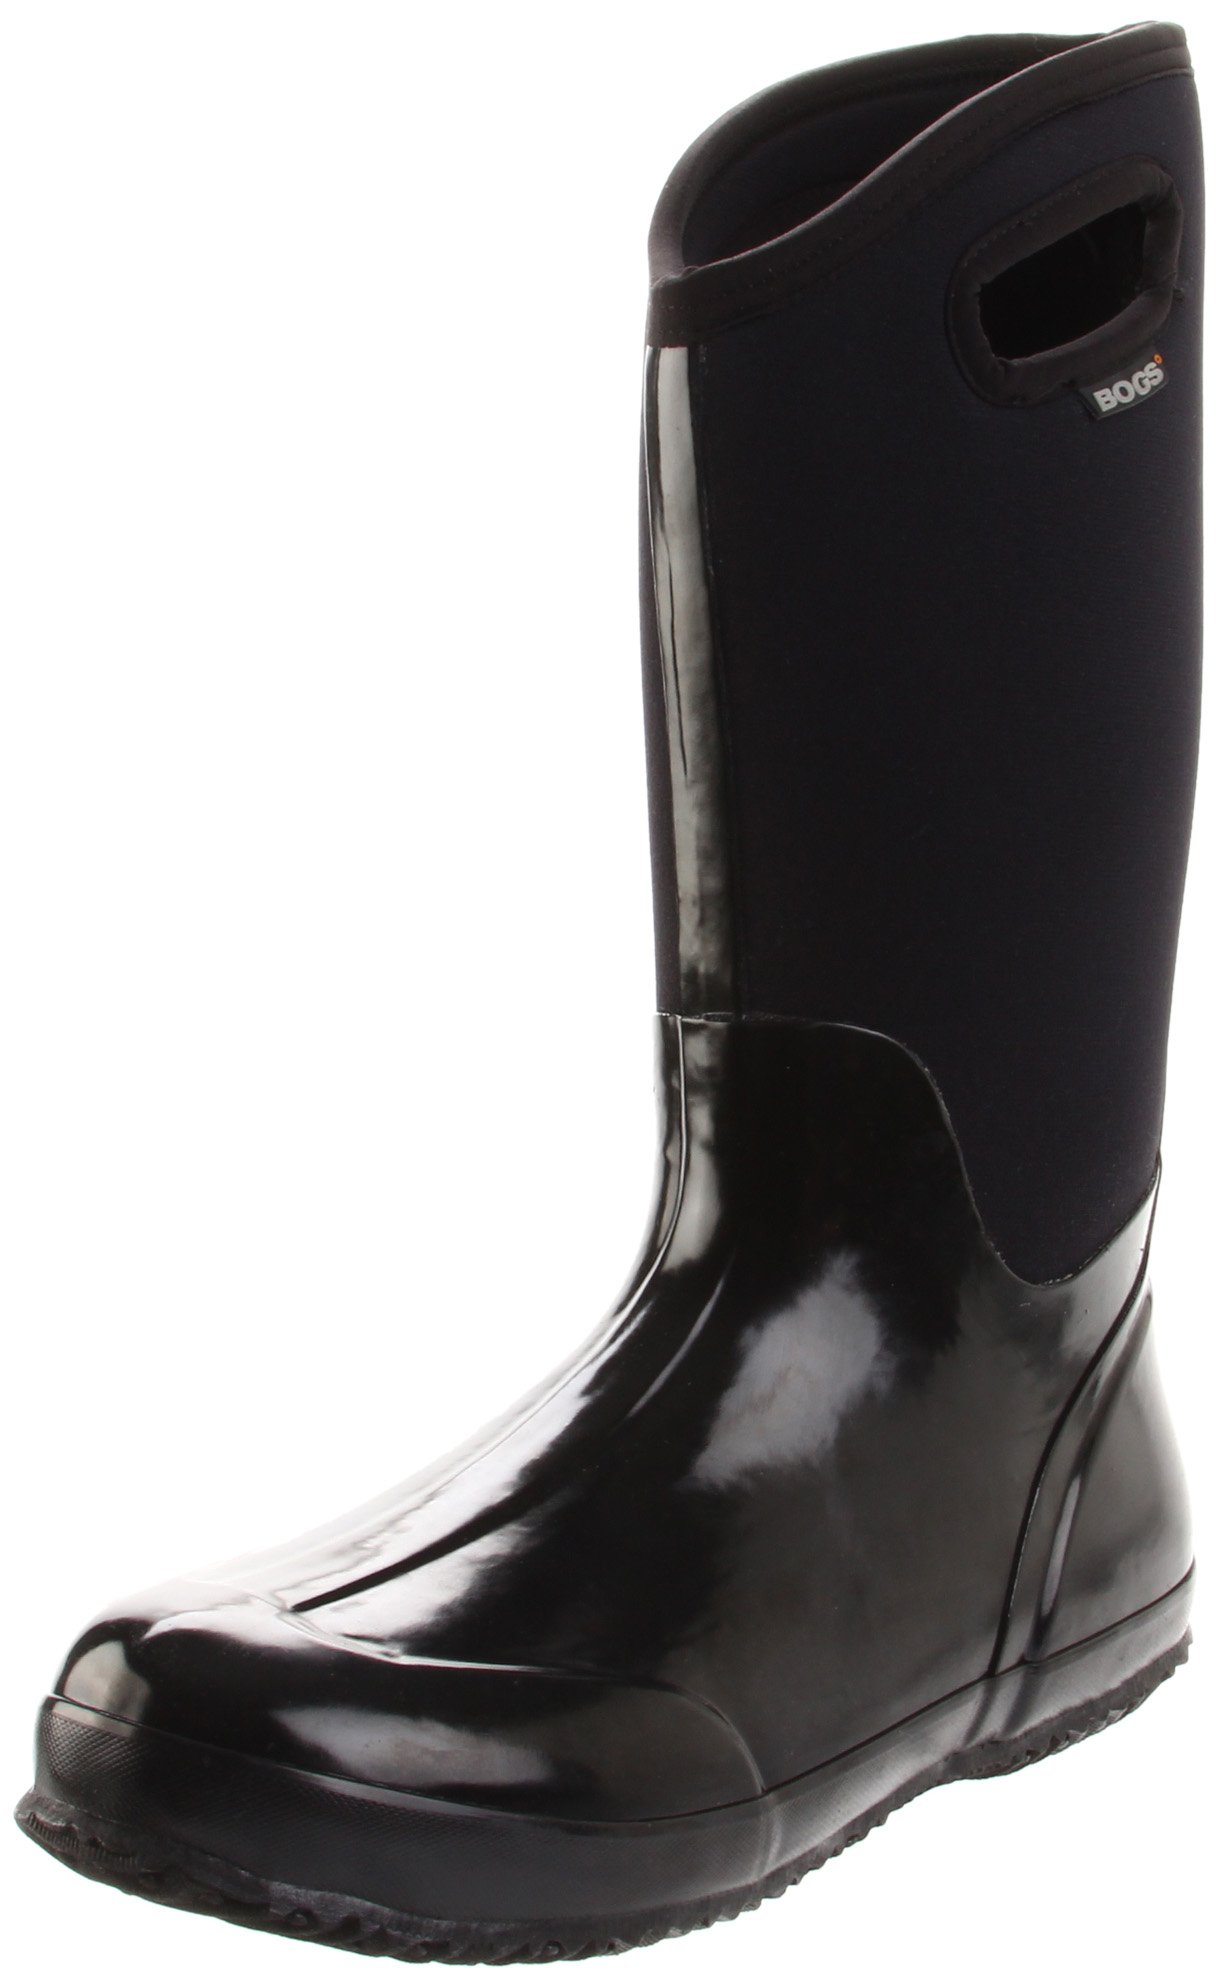 Bogs Women's Classic High Handle Waterproof Insulated Boot,Black Smooth,7 M US by Bogs (Image #1)